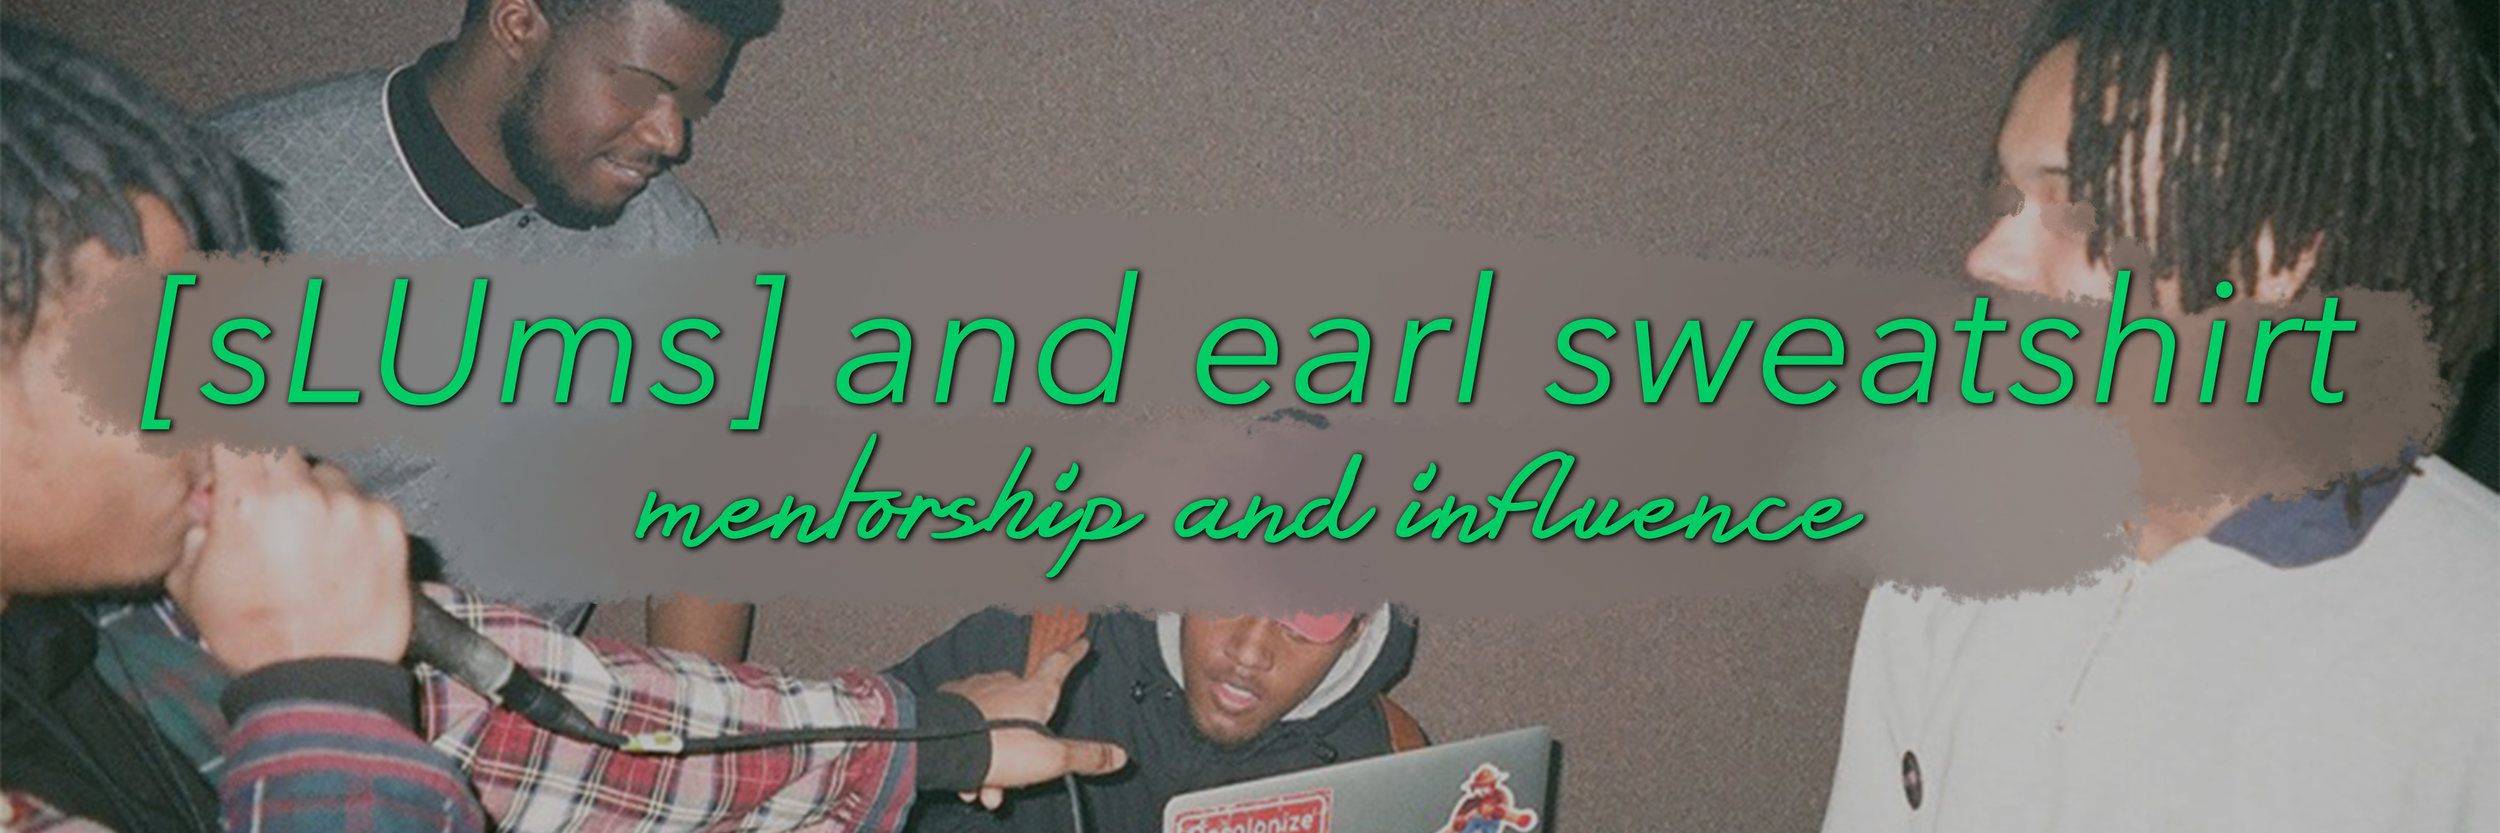 [sLUms] and Earl Sweatshirt.jpg